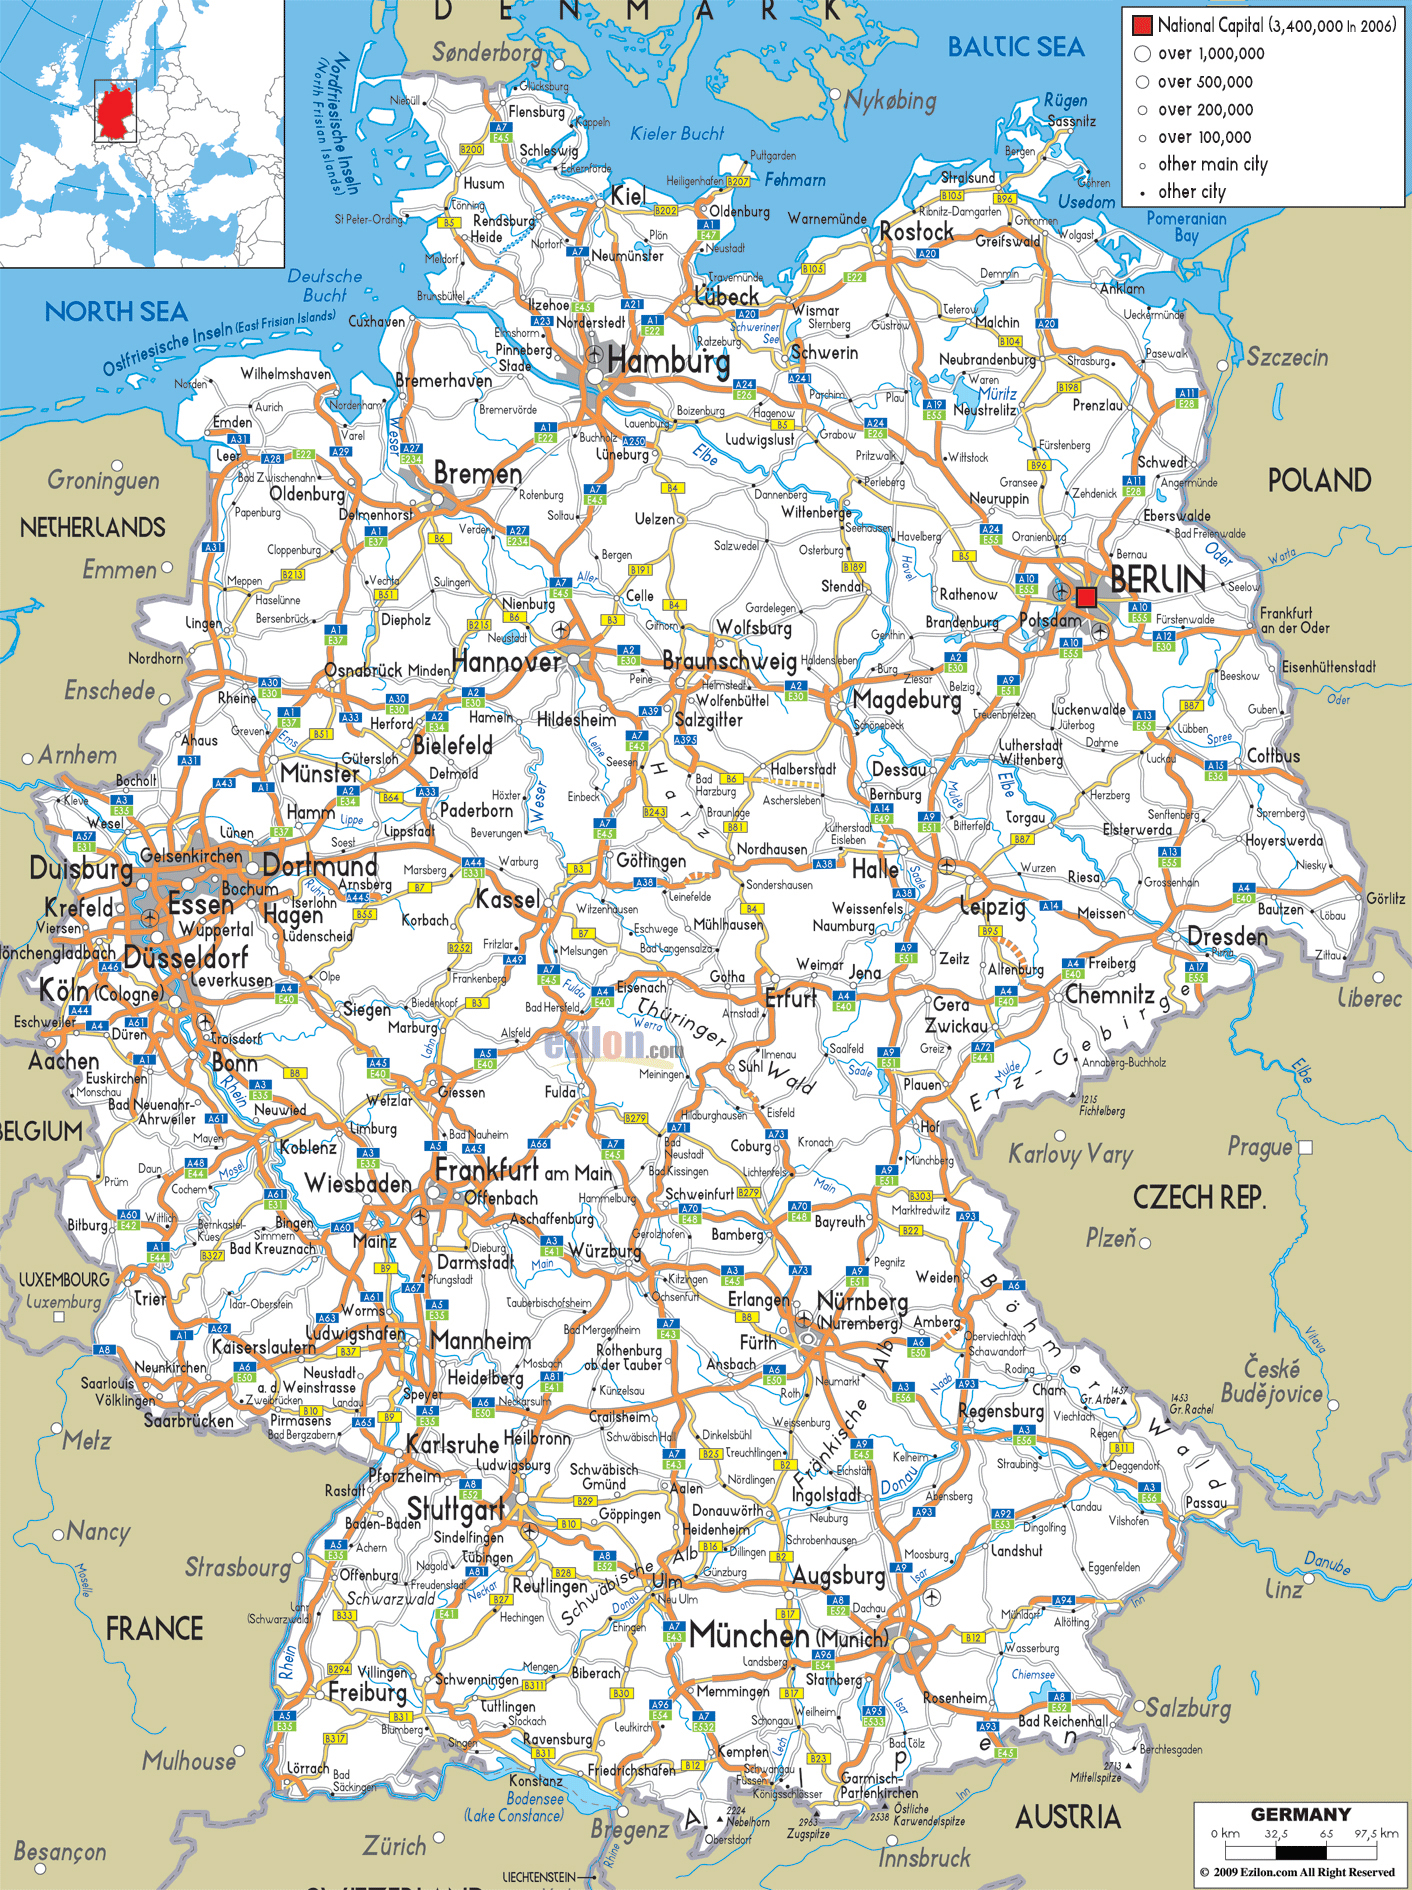 Map Of Germany Showing Cities.Large Detailed Road Map Of Germany With All Cities And Airports